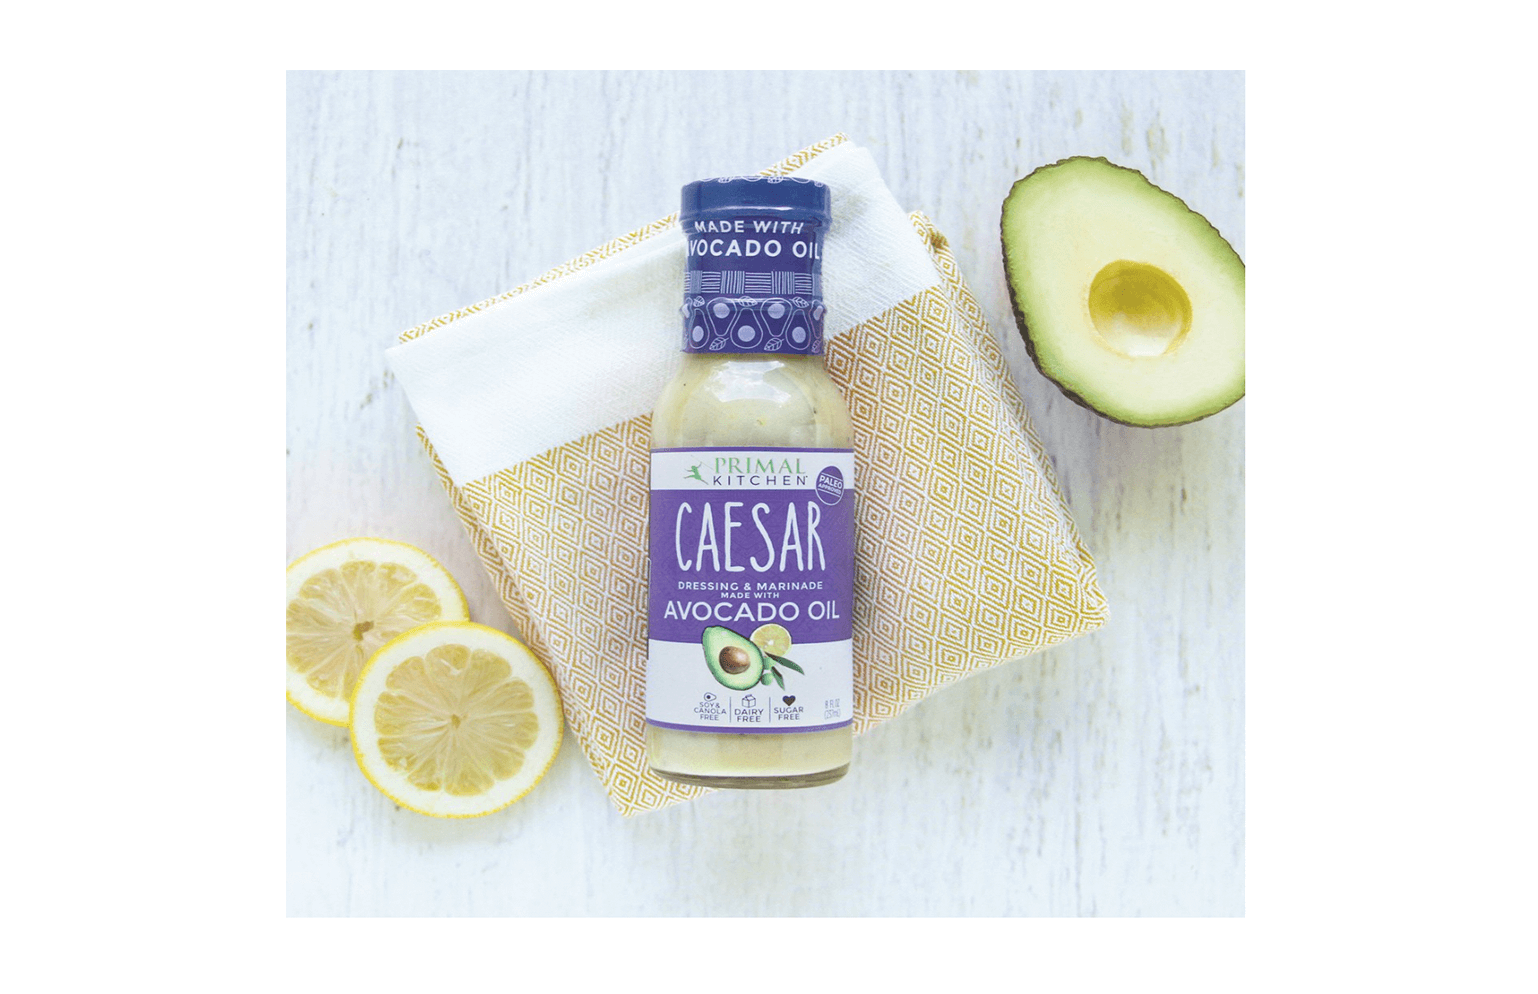 primal kitchen caesar avocado oil